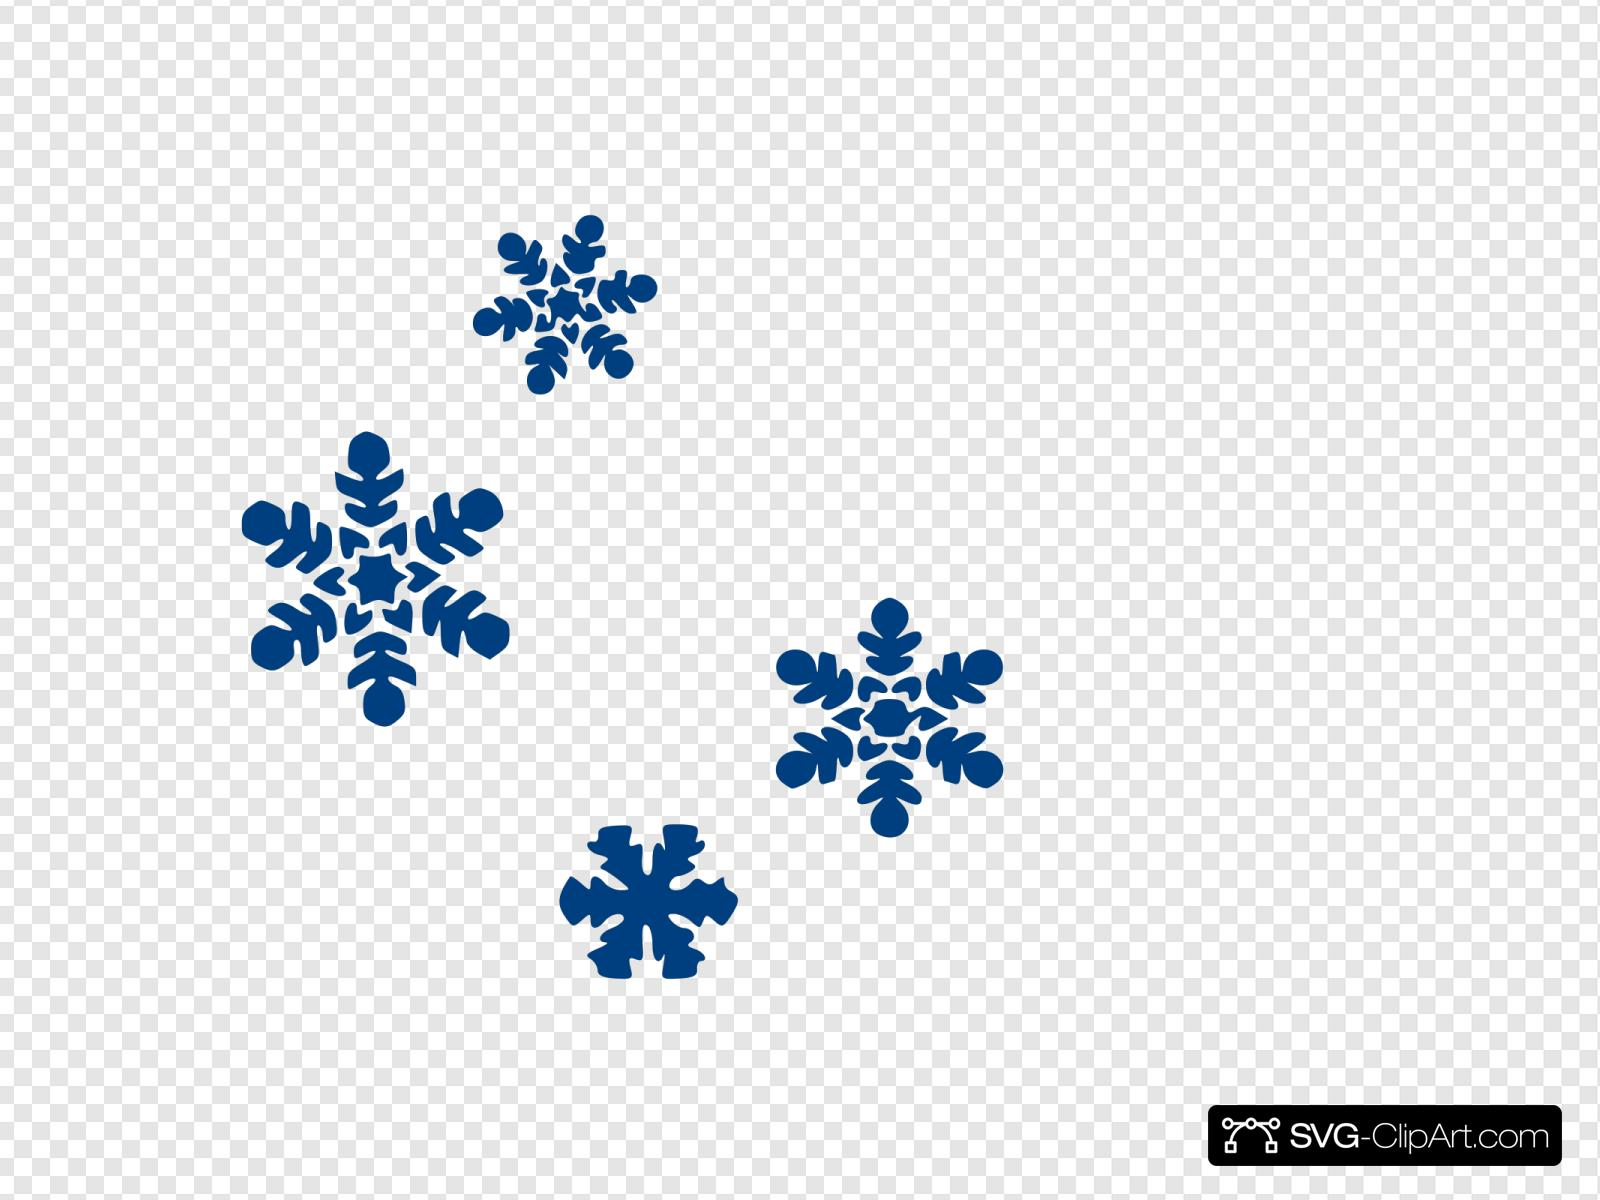 Snow blue. Flakes clip art icon